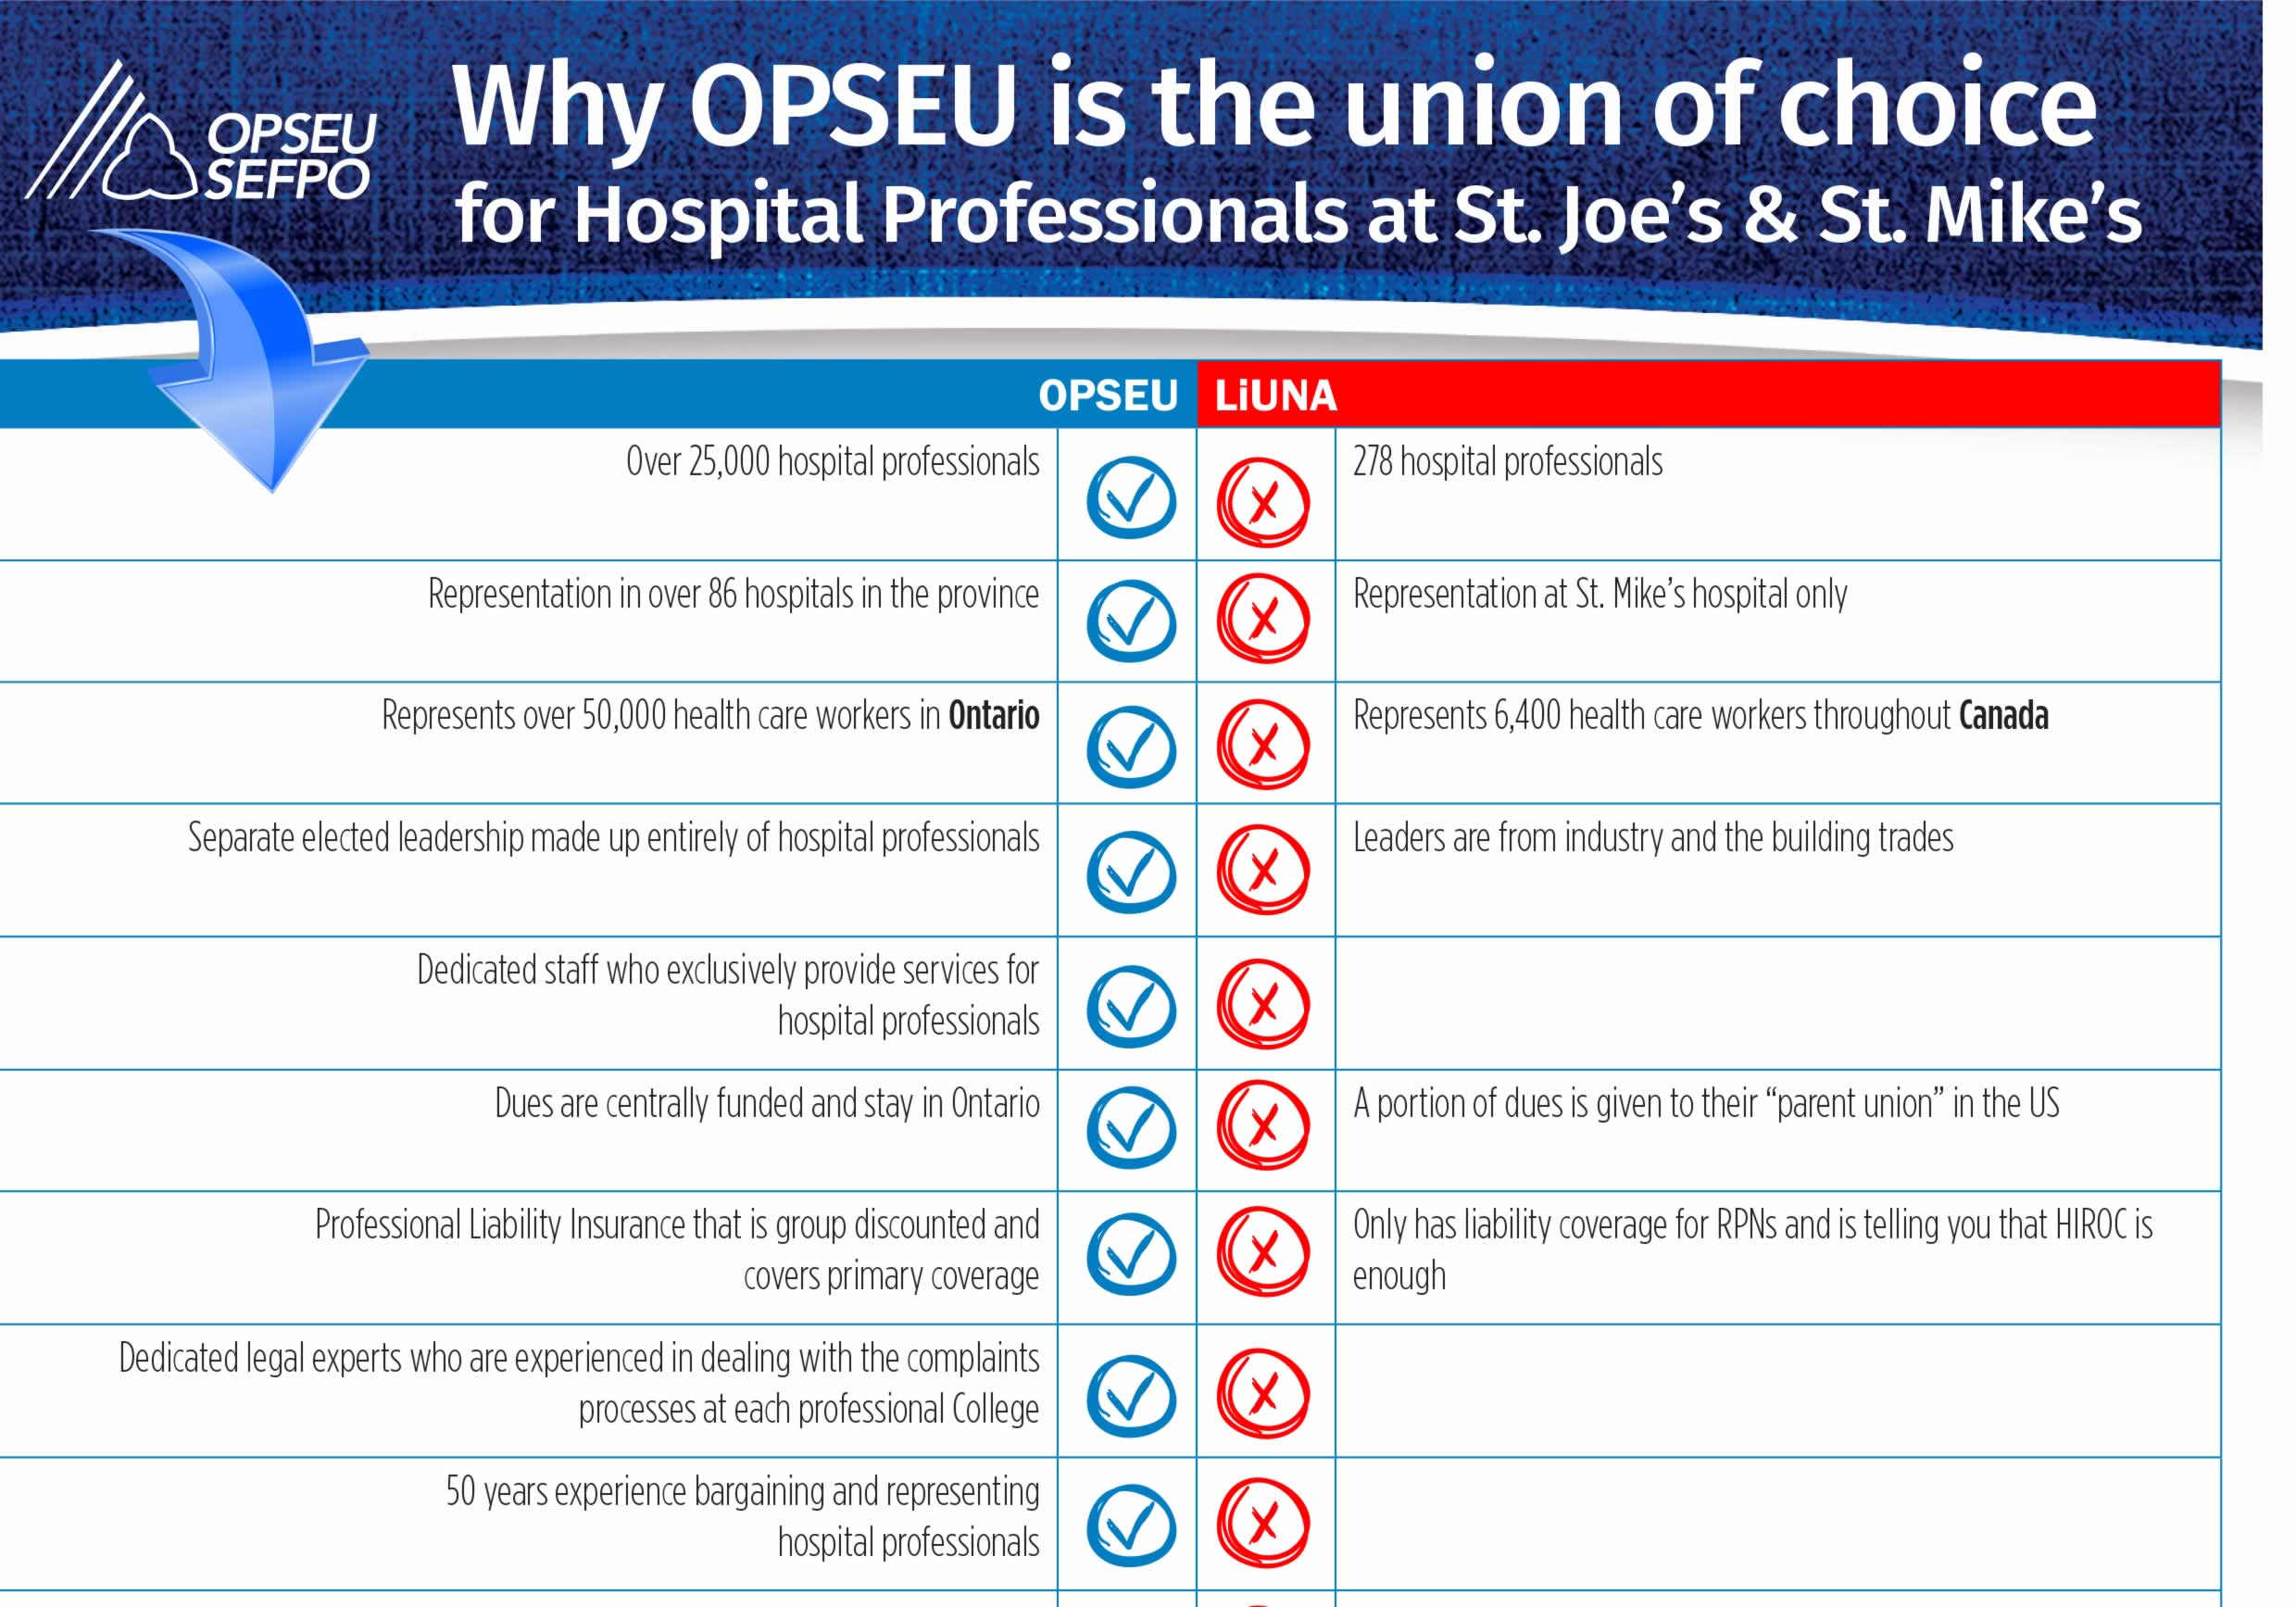 Why OPSEU is the union of choice for Hospital Professionals at St. Joe's and St. Mike's chart